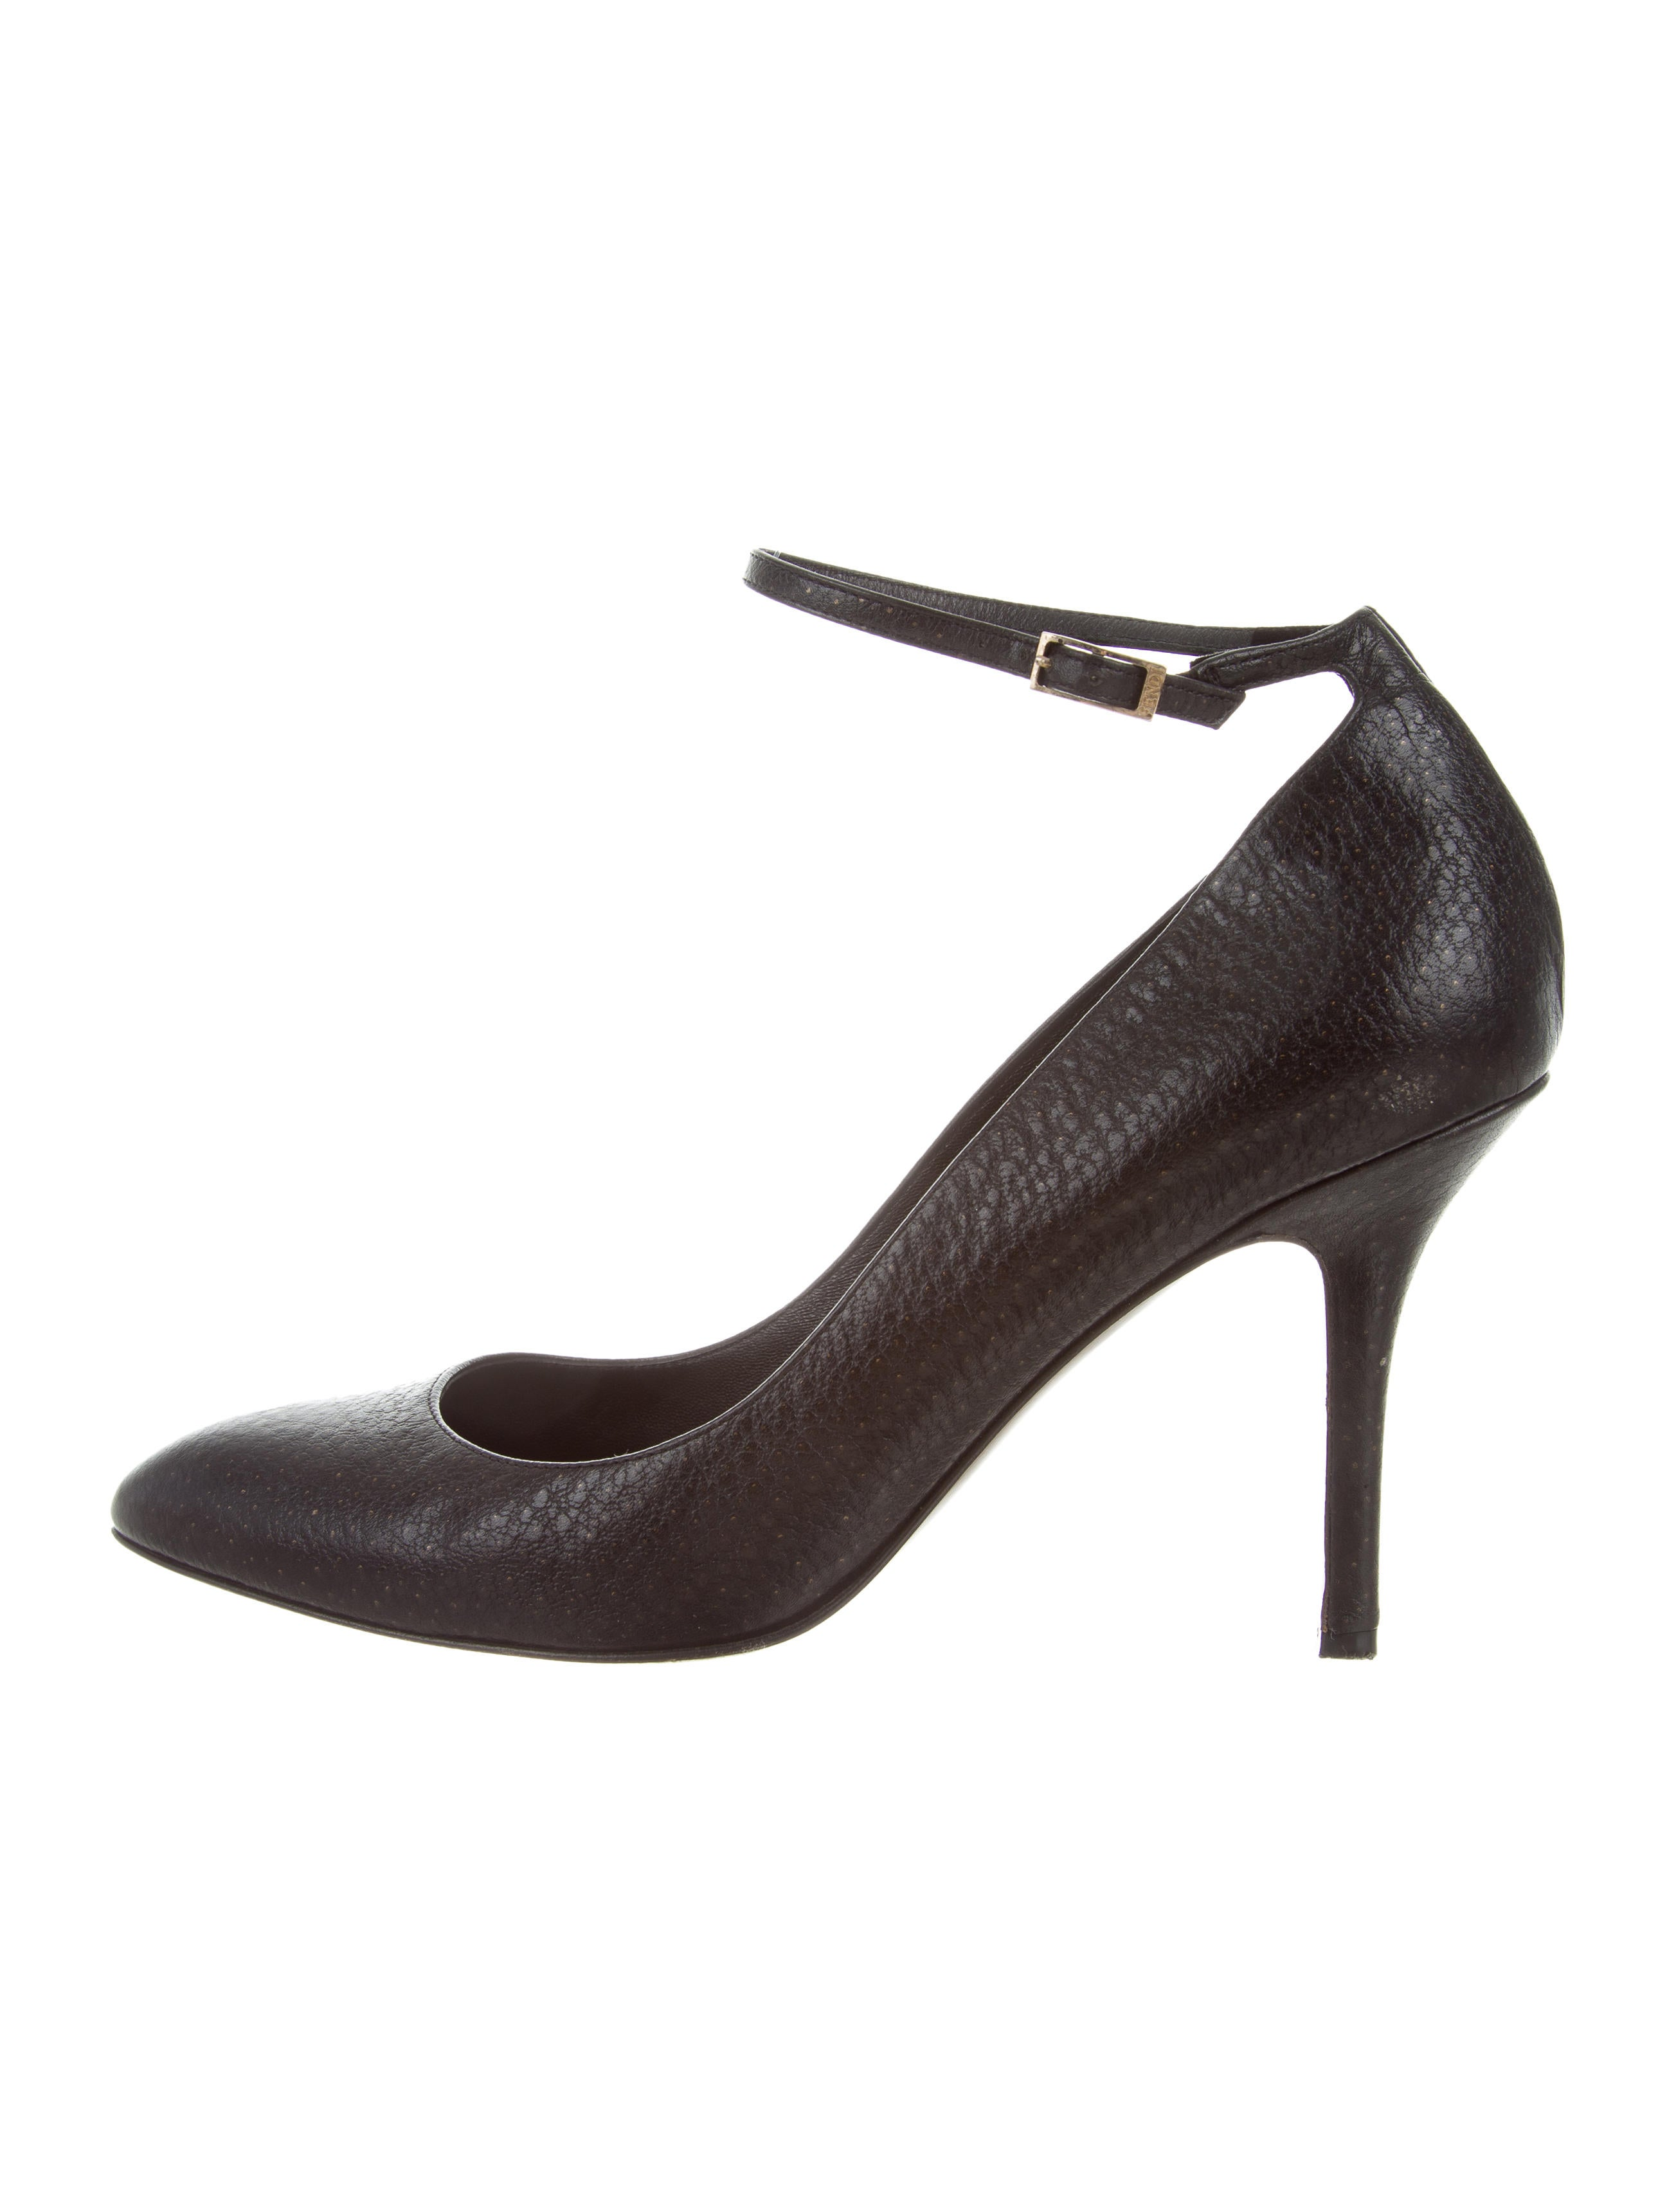 2745409db7 Fendi Leather Pointed-Toe Pumps - Shoes - FEN61914 | The RealReal